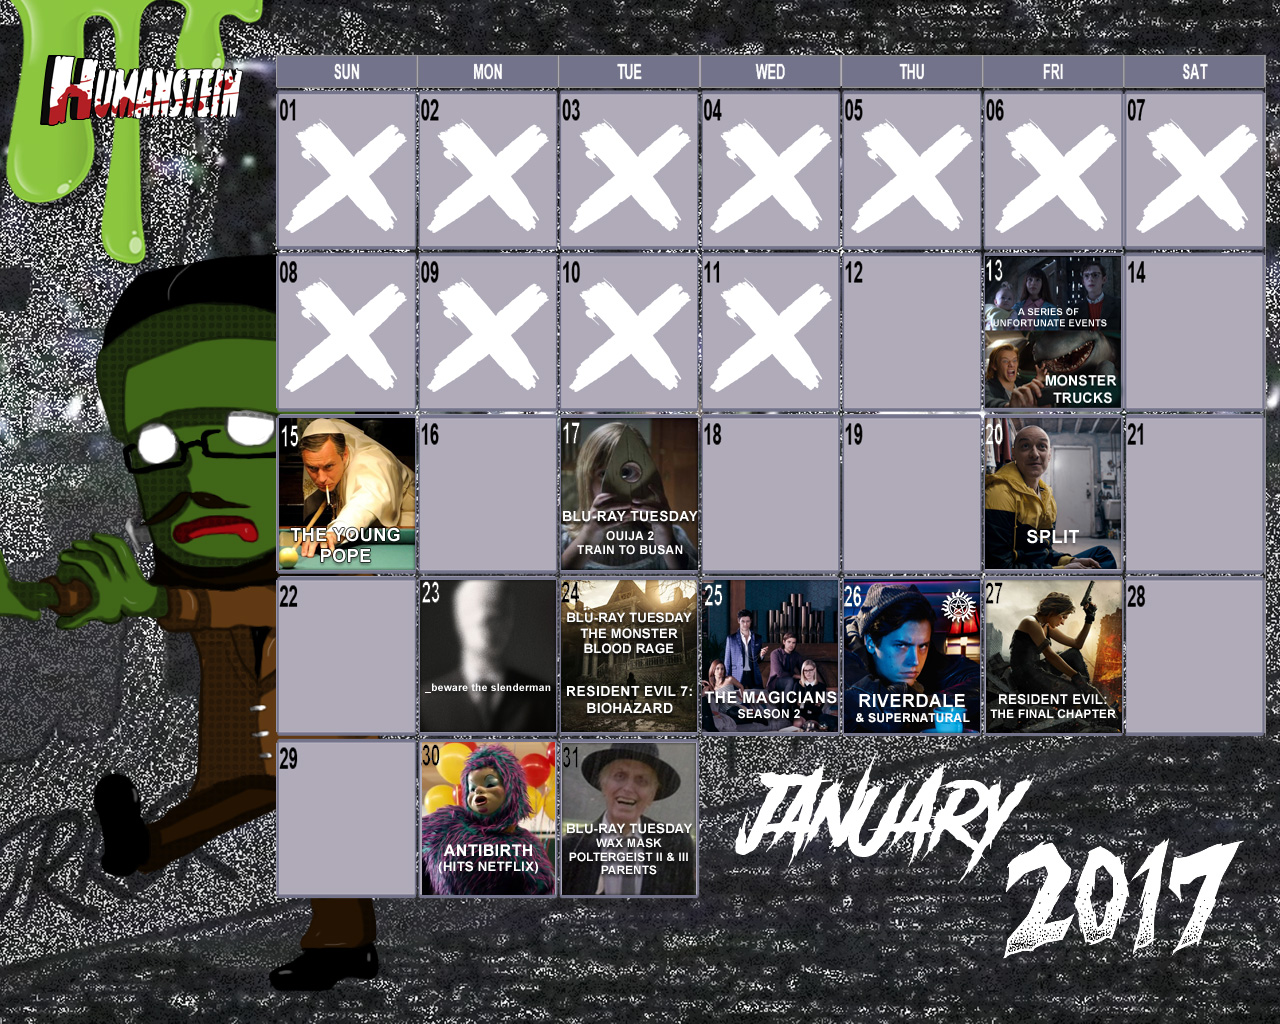 January 2017 Horror Geek Calendar